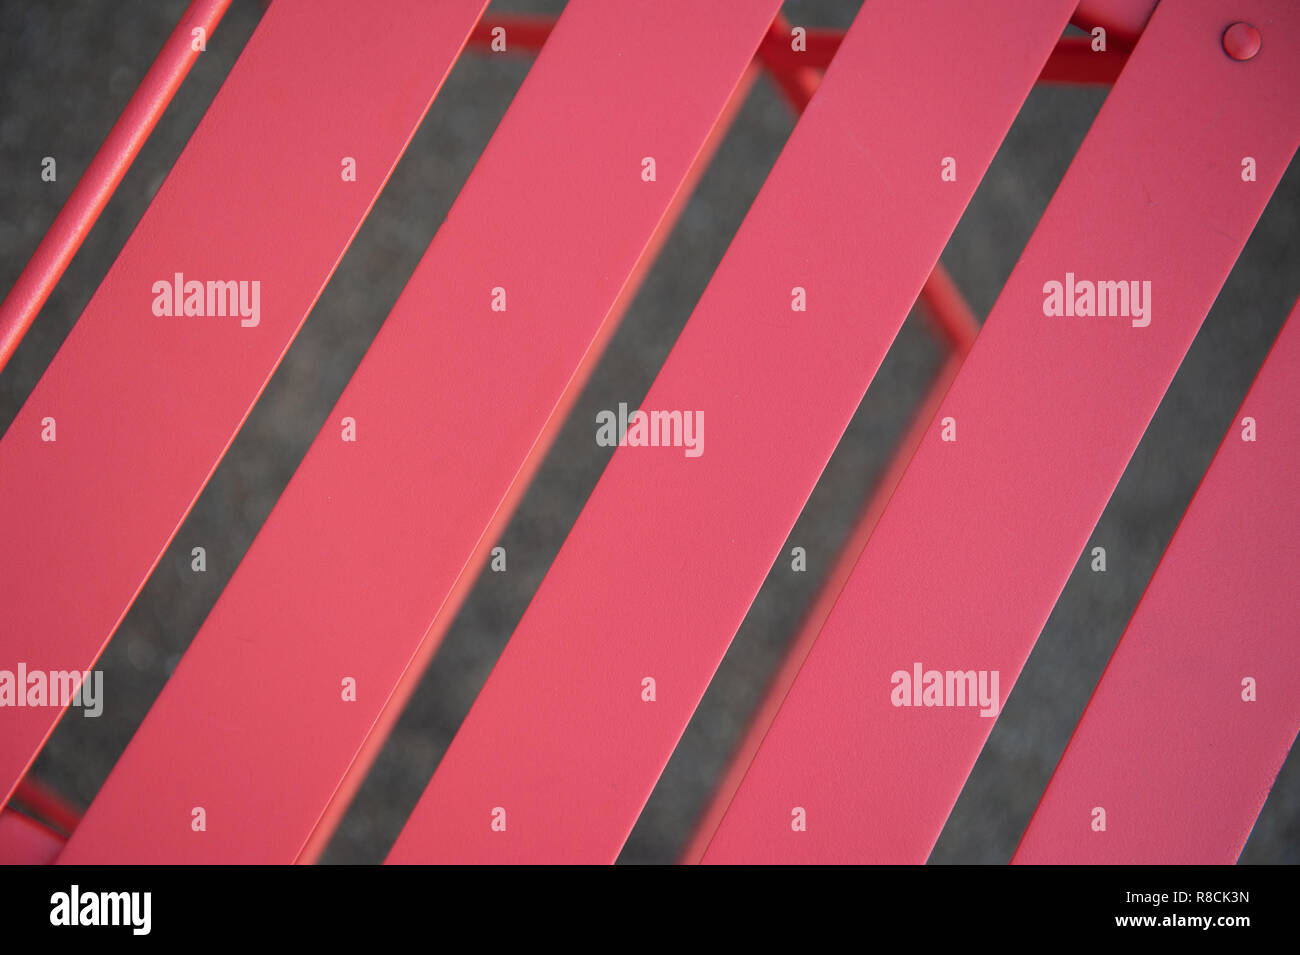 Slats on seat of cafe style chair. - Stock Image